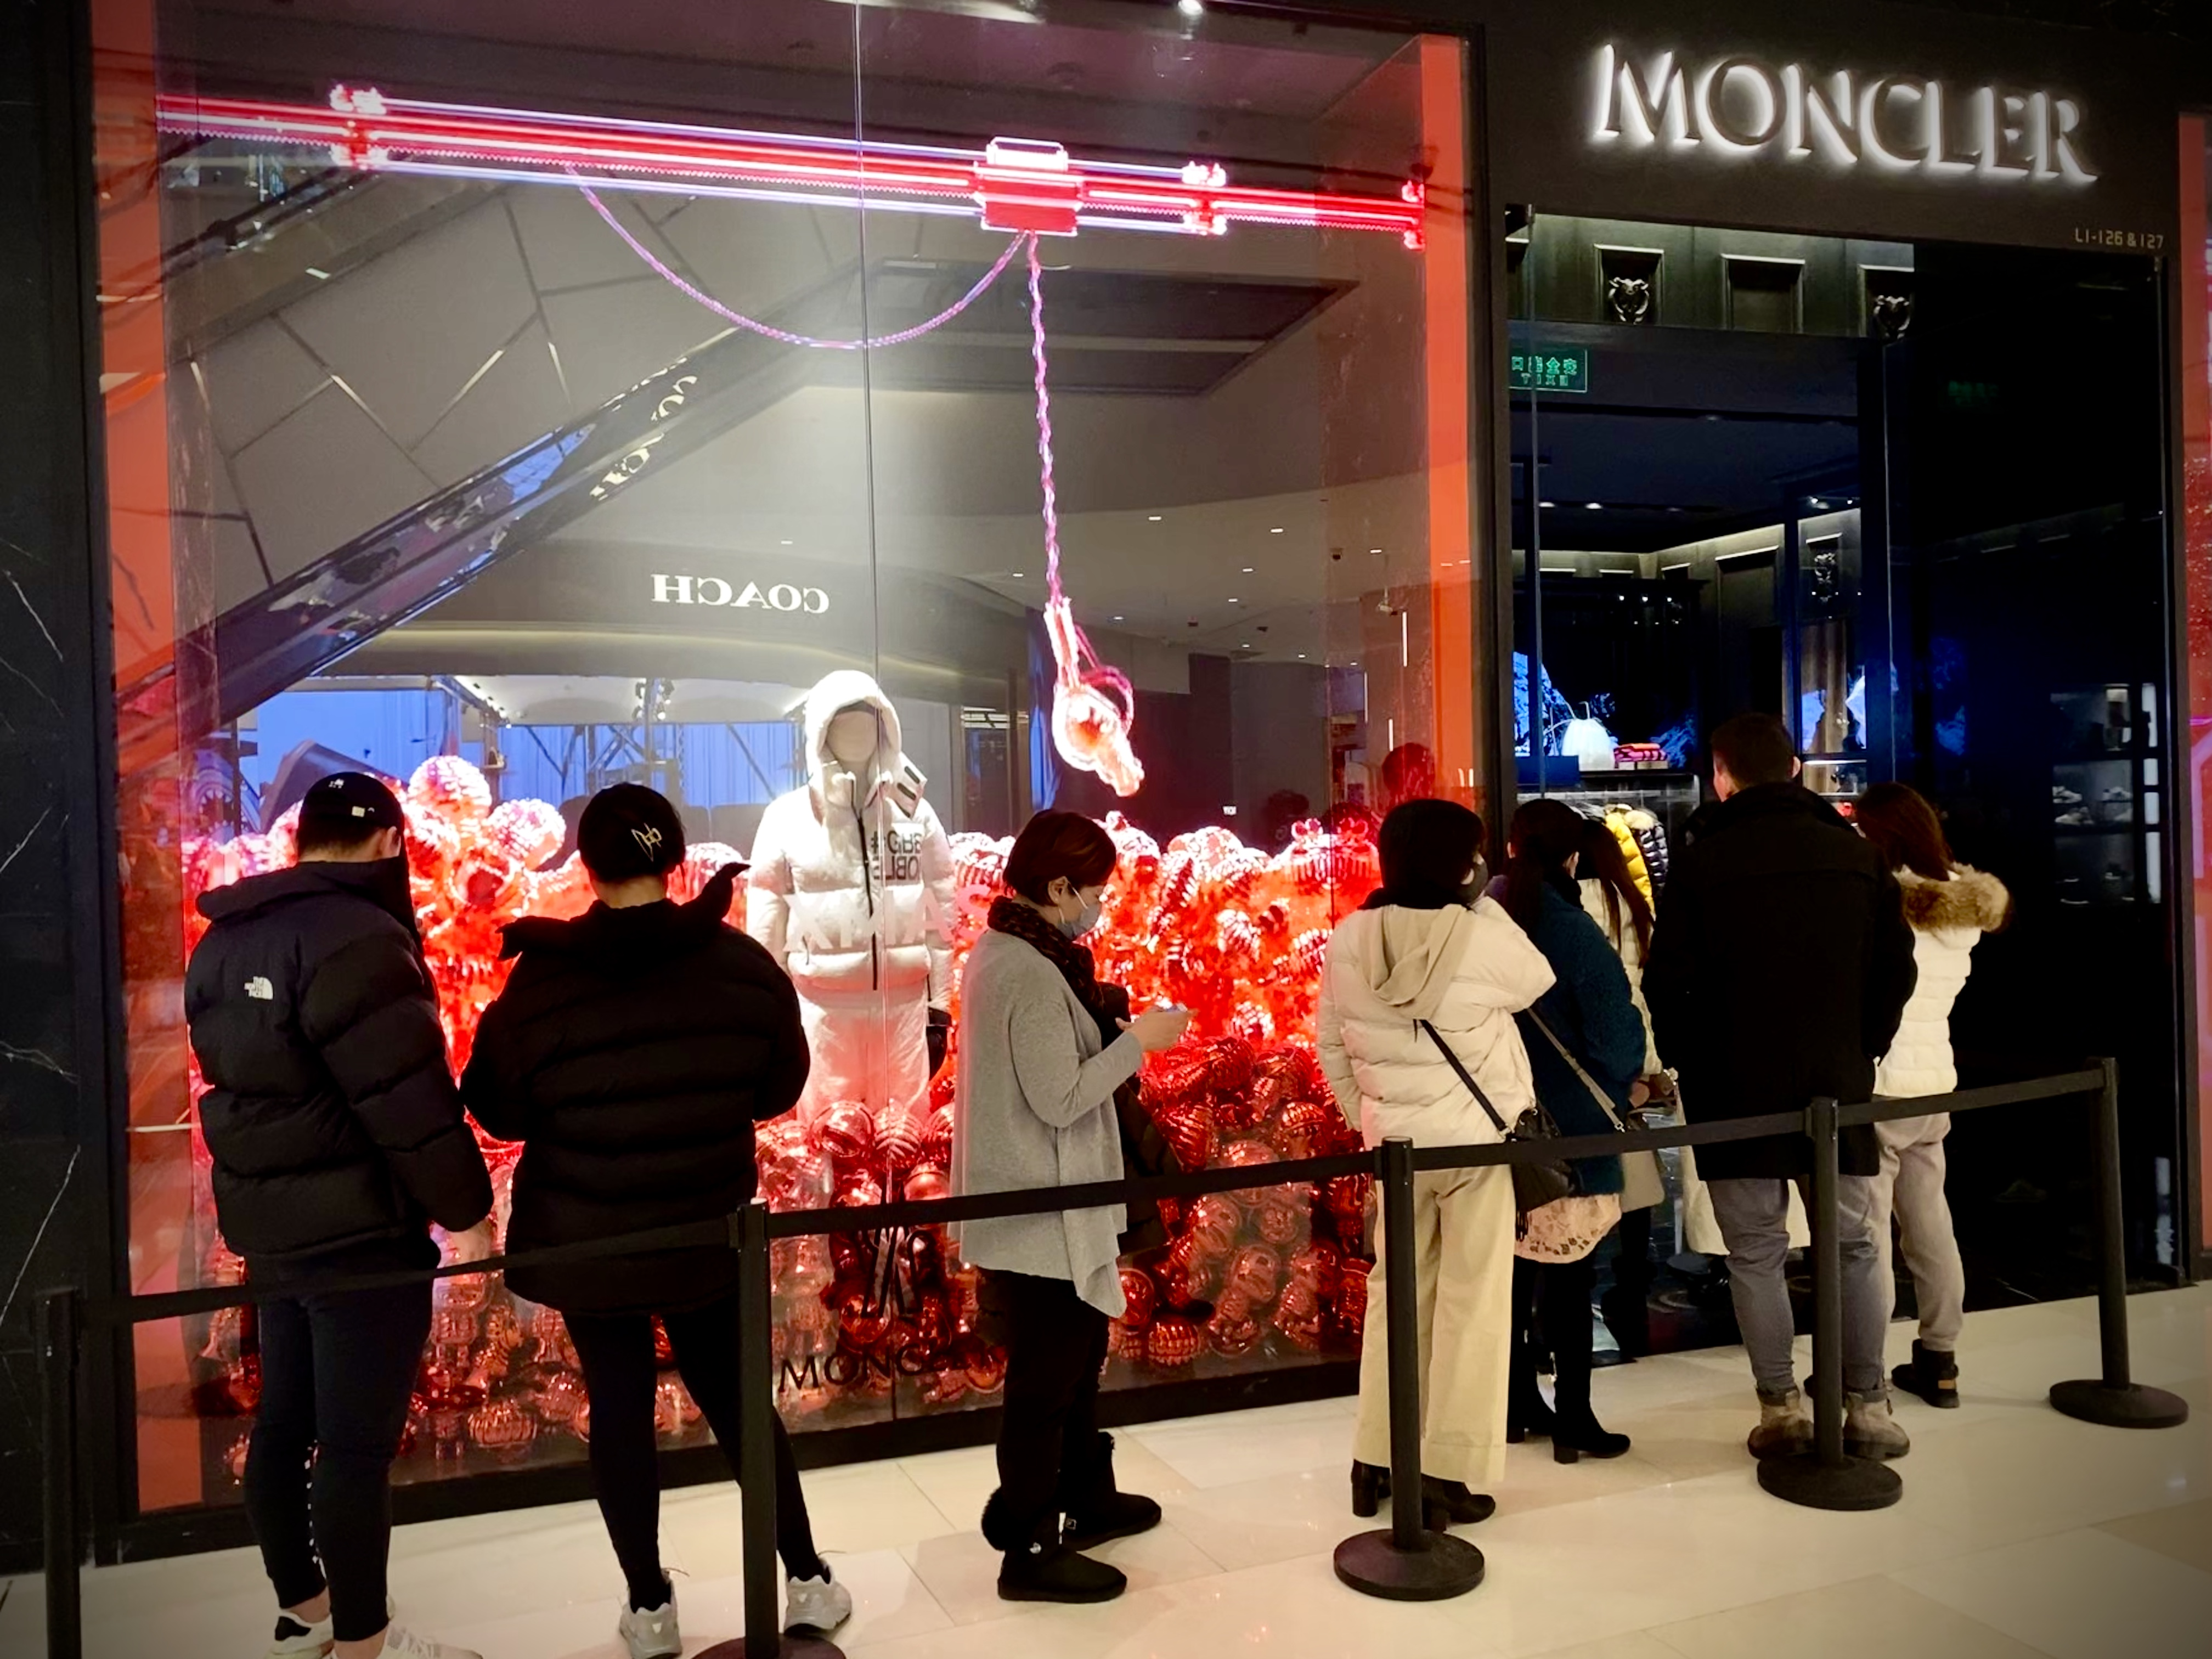 A line outside the Moncler store in Shanghai's iAPM mall.